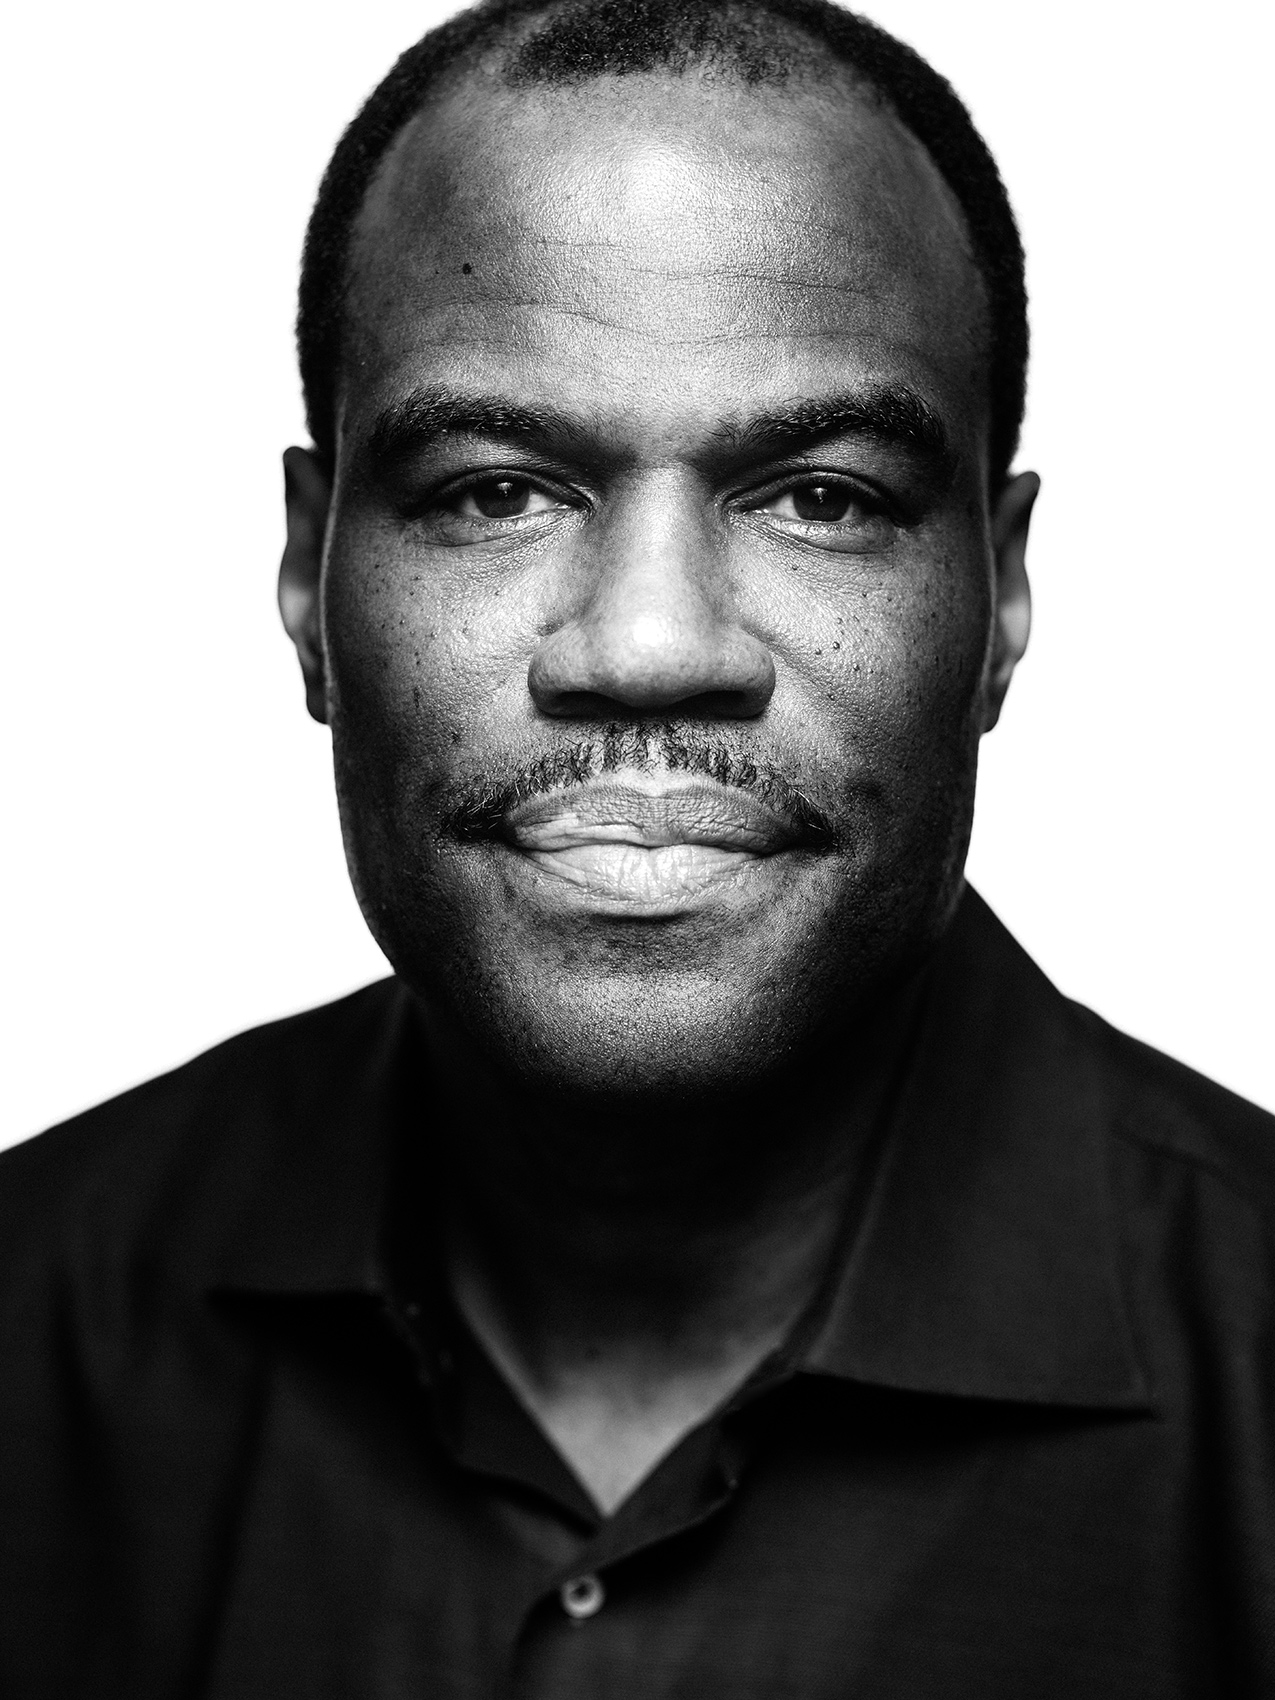 San Antonio Spurs and NBA legend, David Robinson, photographed in San Antonio, TX by sports portrait photographer, Josh Huskin.